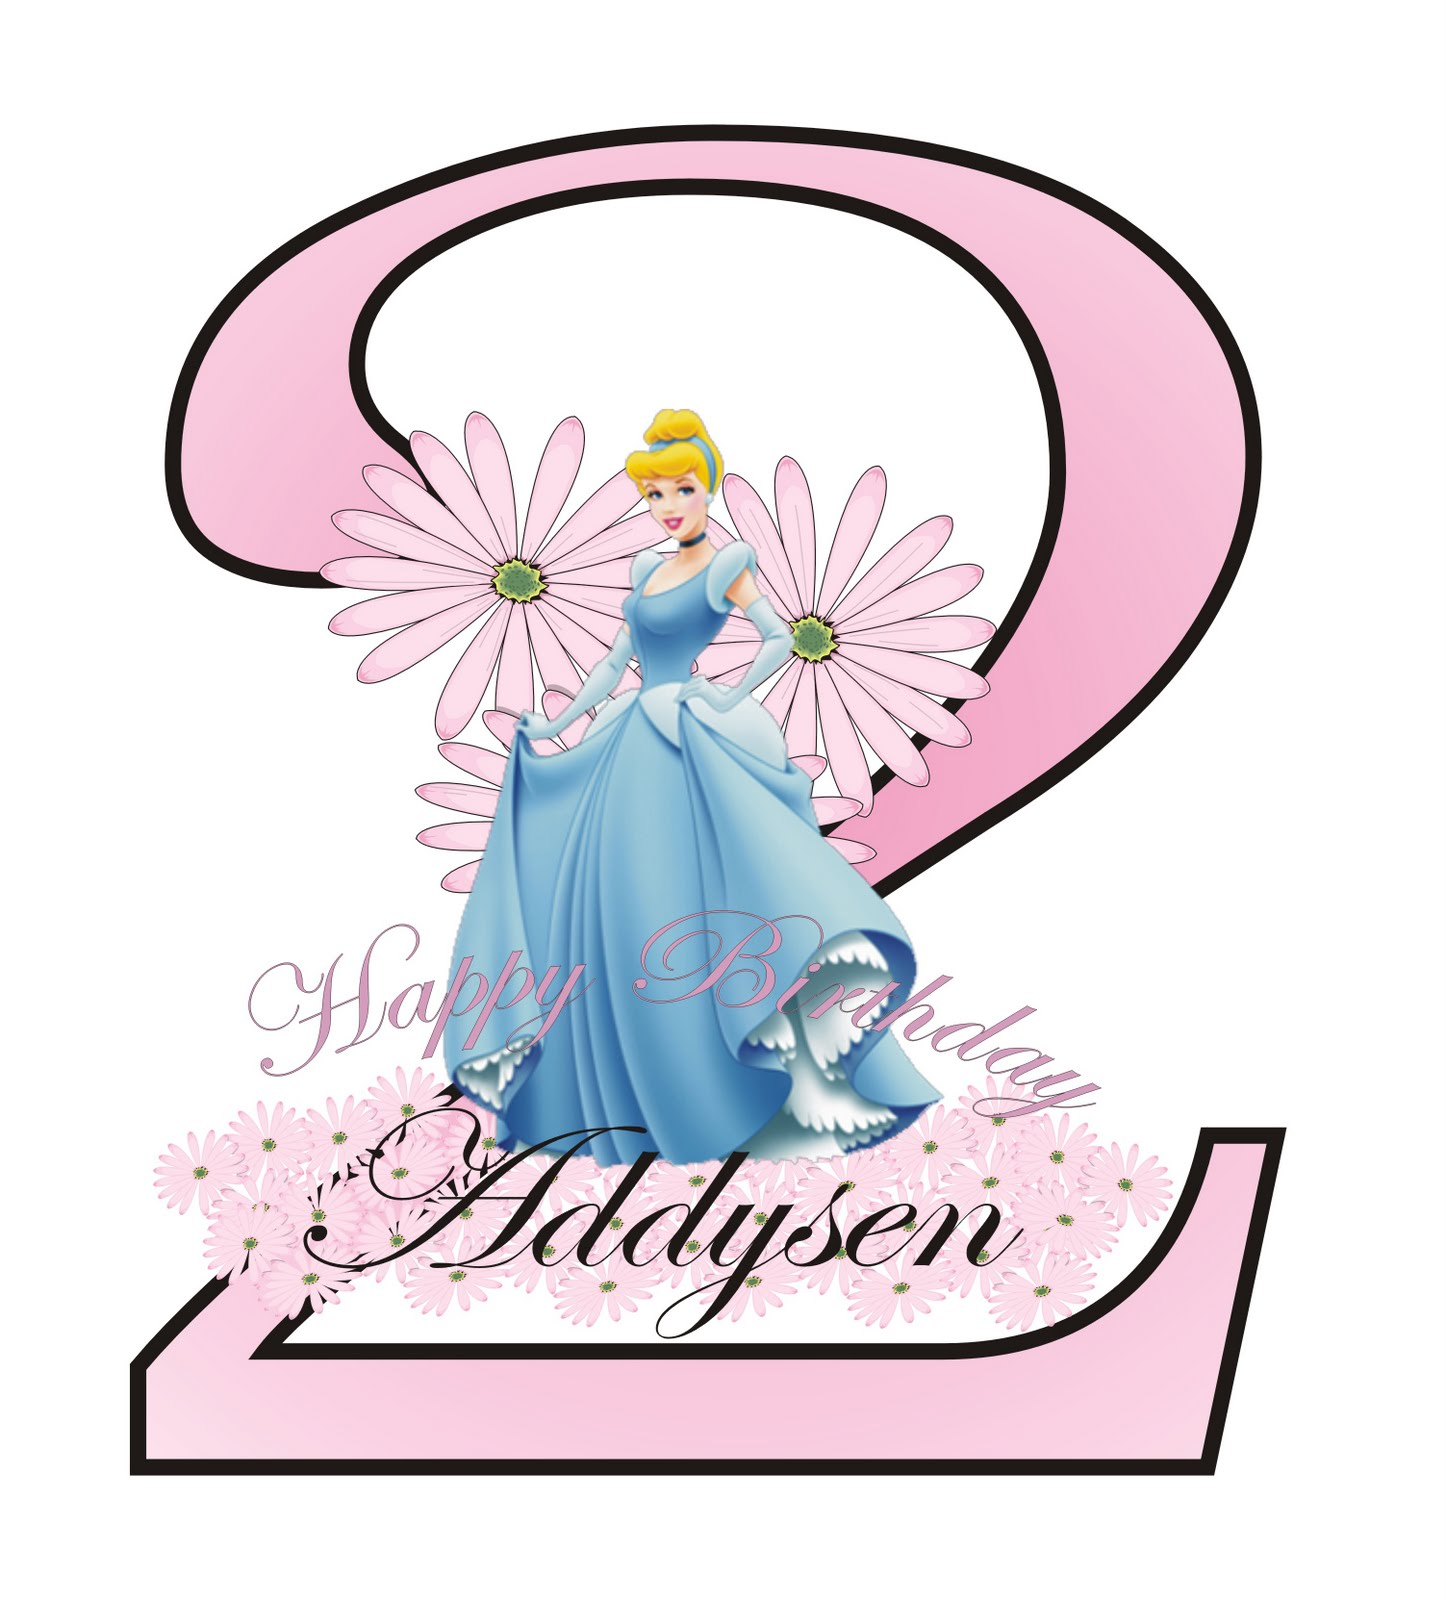 Happy Birthday Princess Nuts 2 Years Ago Our Lives Were Changed Again With The Arrival Of Addysen Bri Since Then Not A Day Has Gone By That She